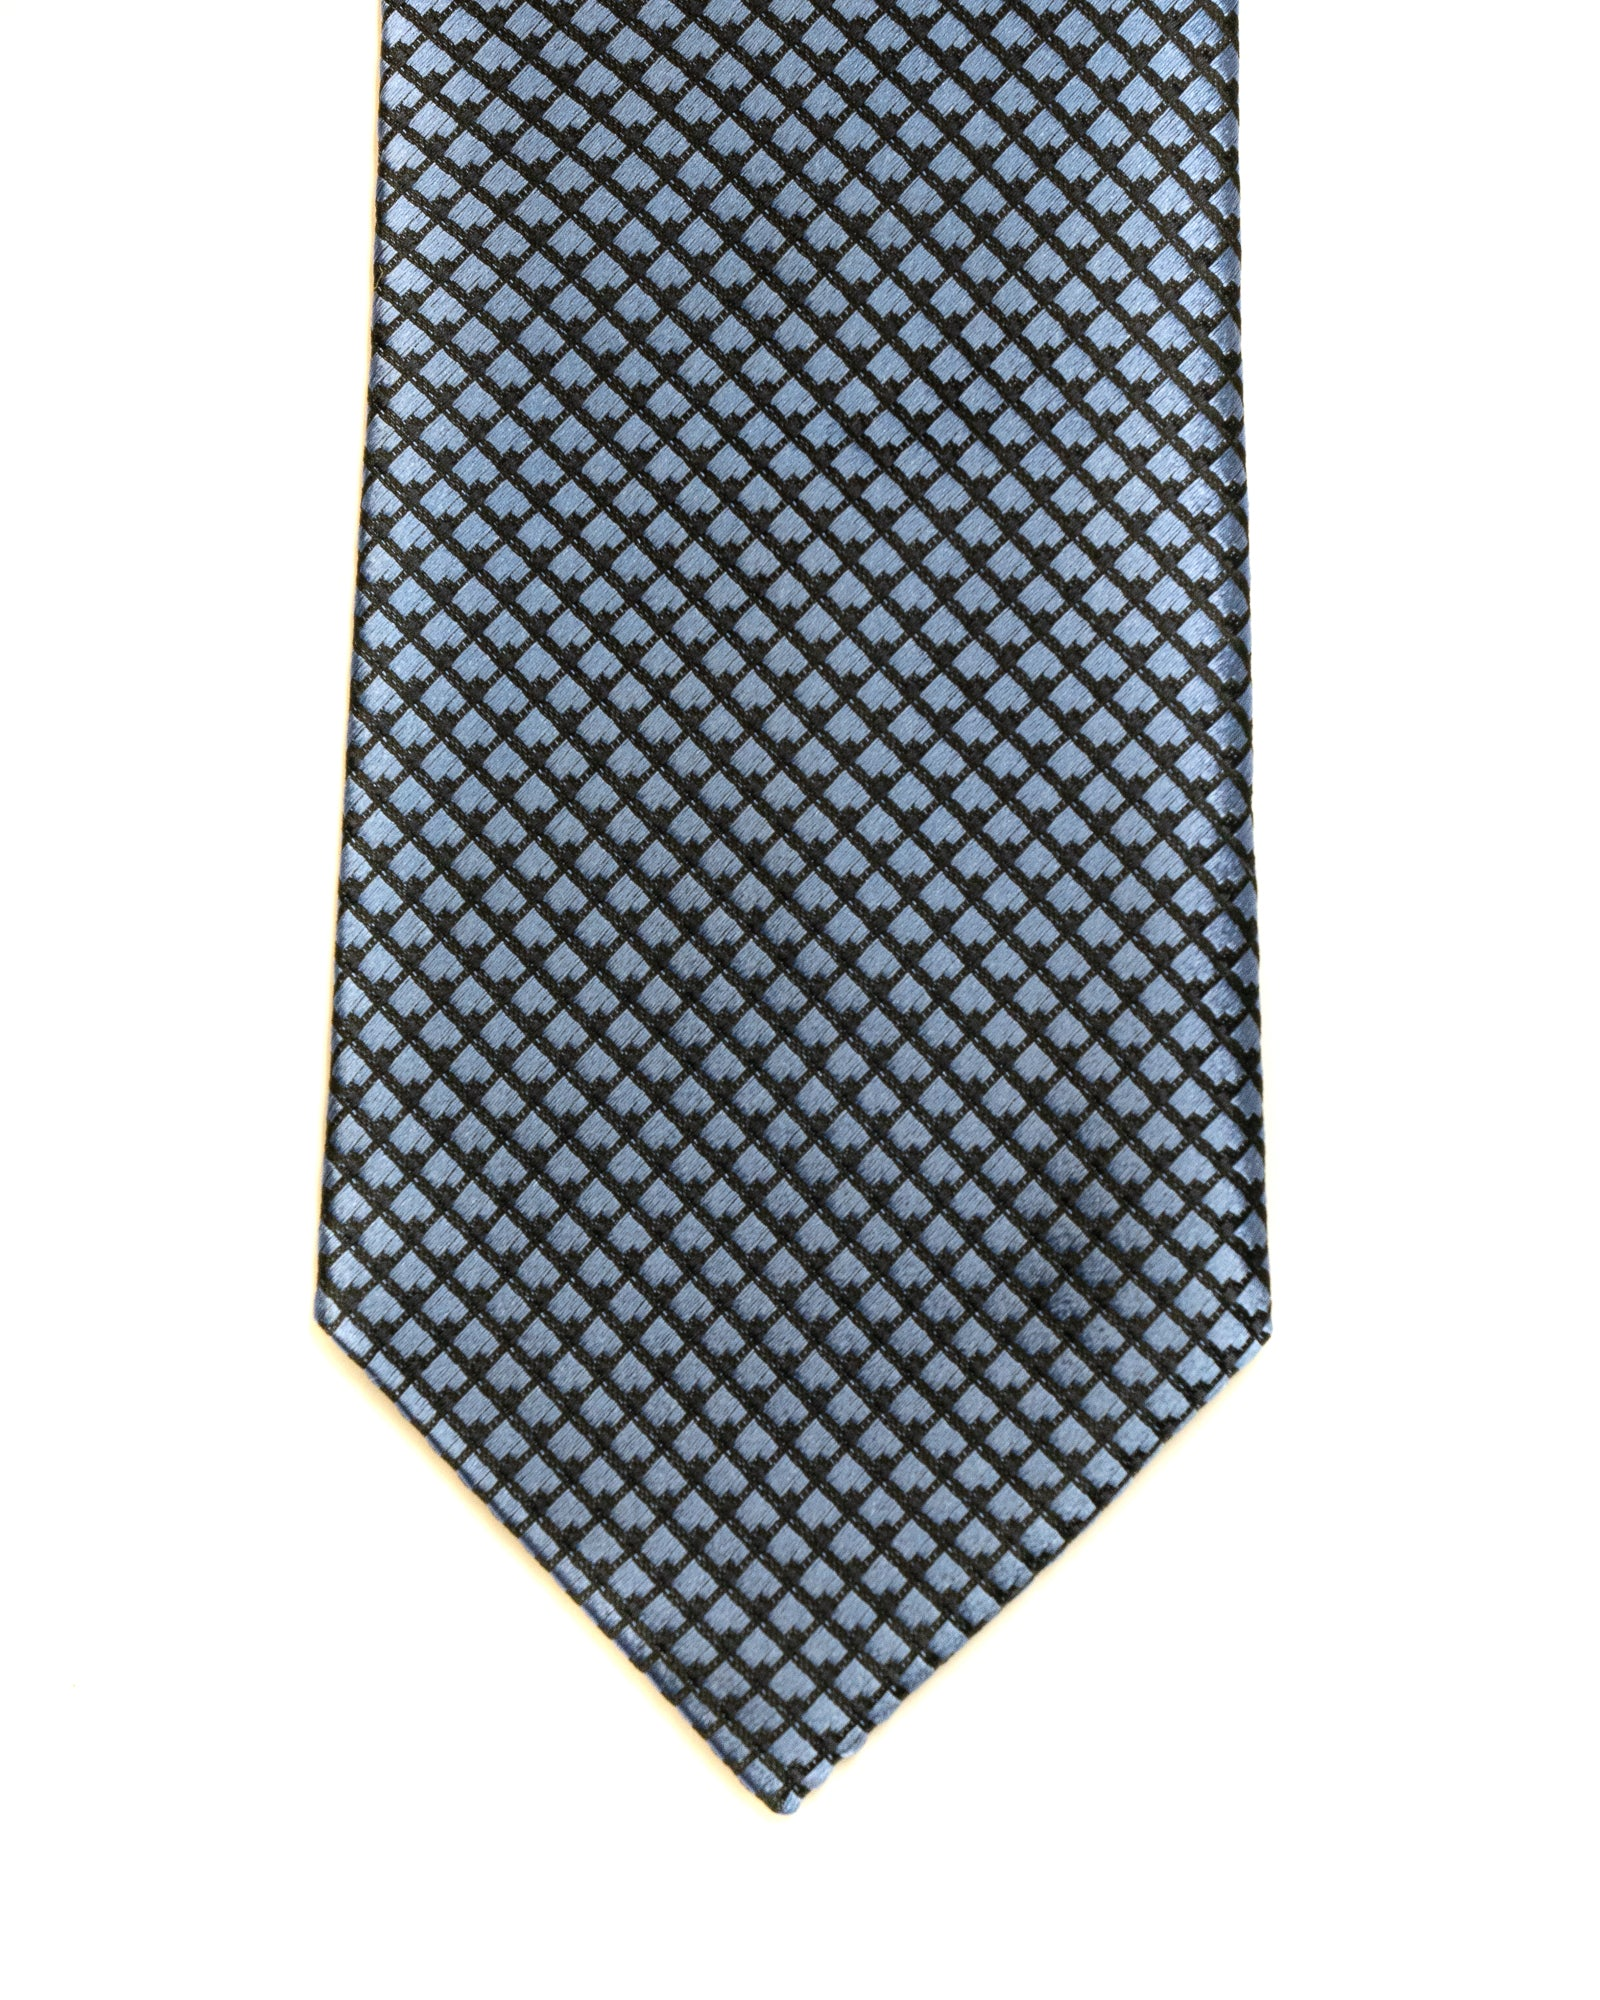 Silk Tie in Blue And Navy Neat Foulard Print - Rainwater's